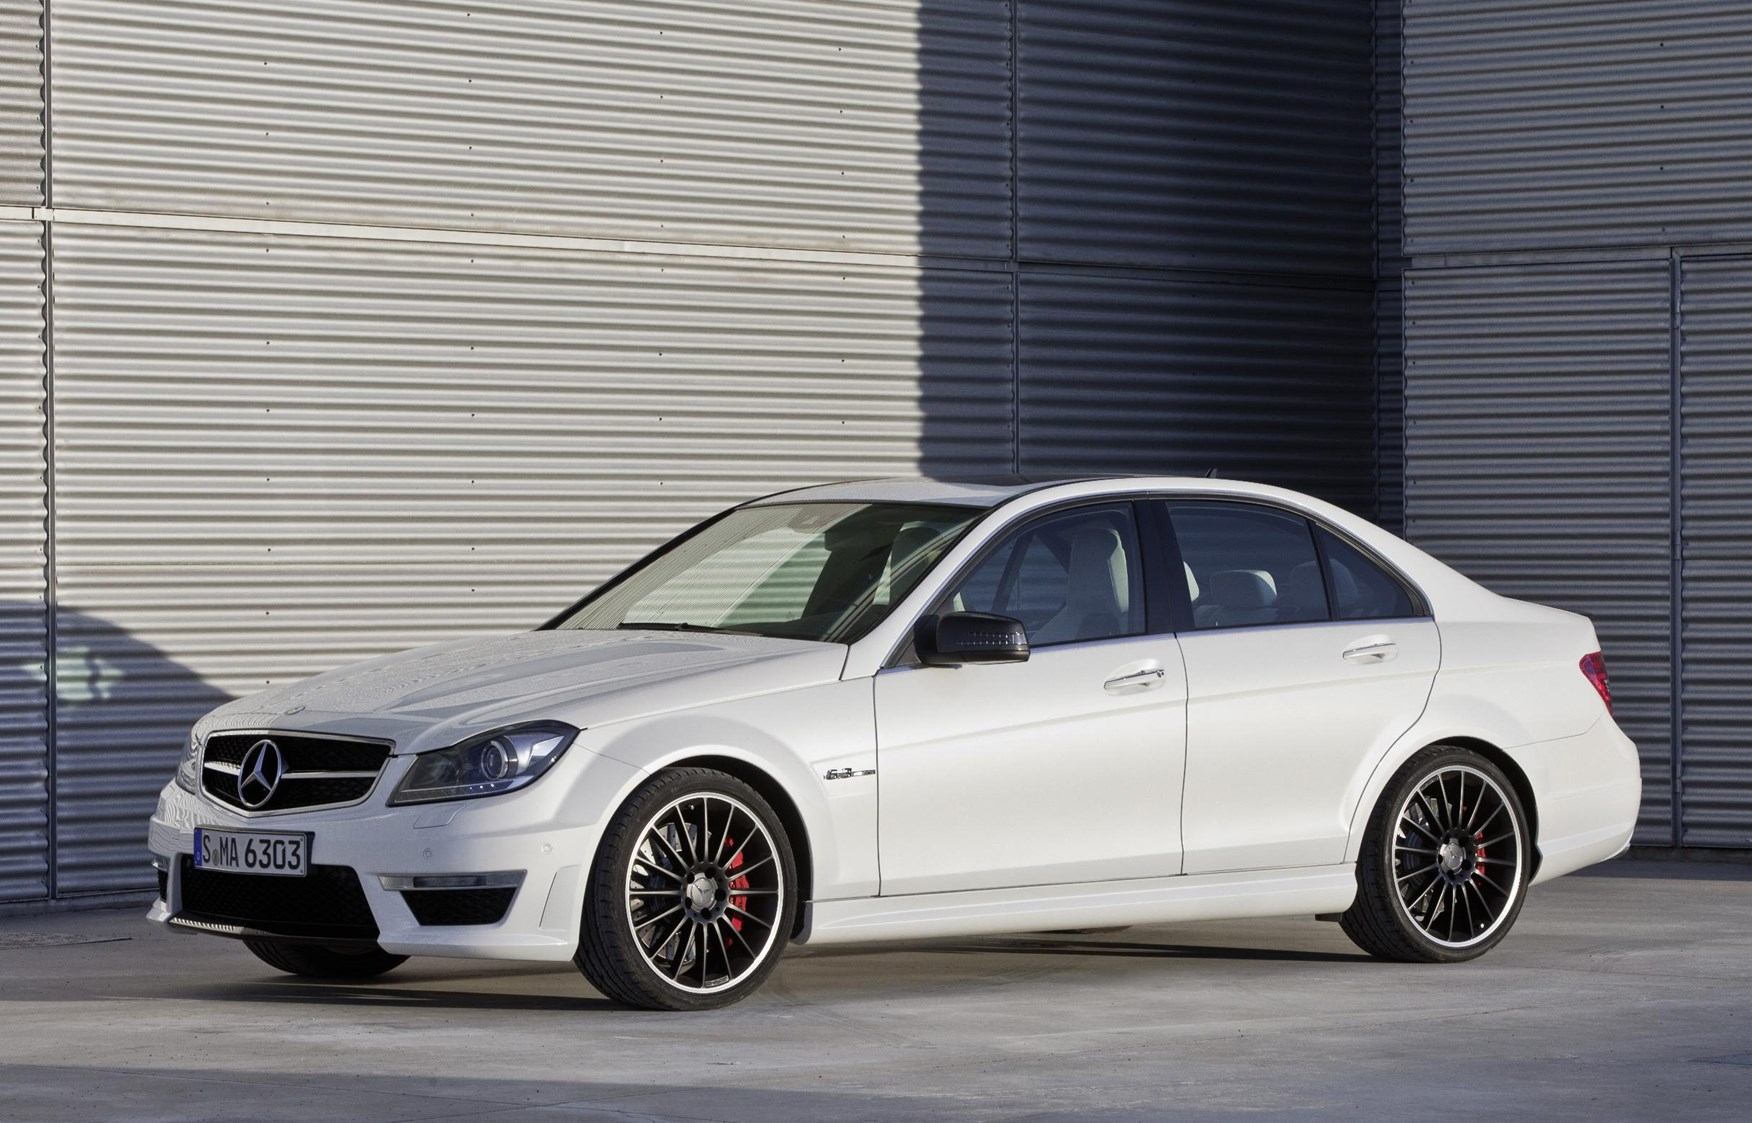 Mercedes benz c class amg review 2011 2015 parkers for Mercedes benz 300 amg